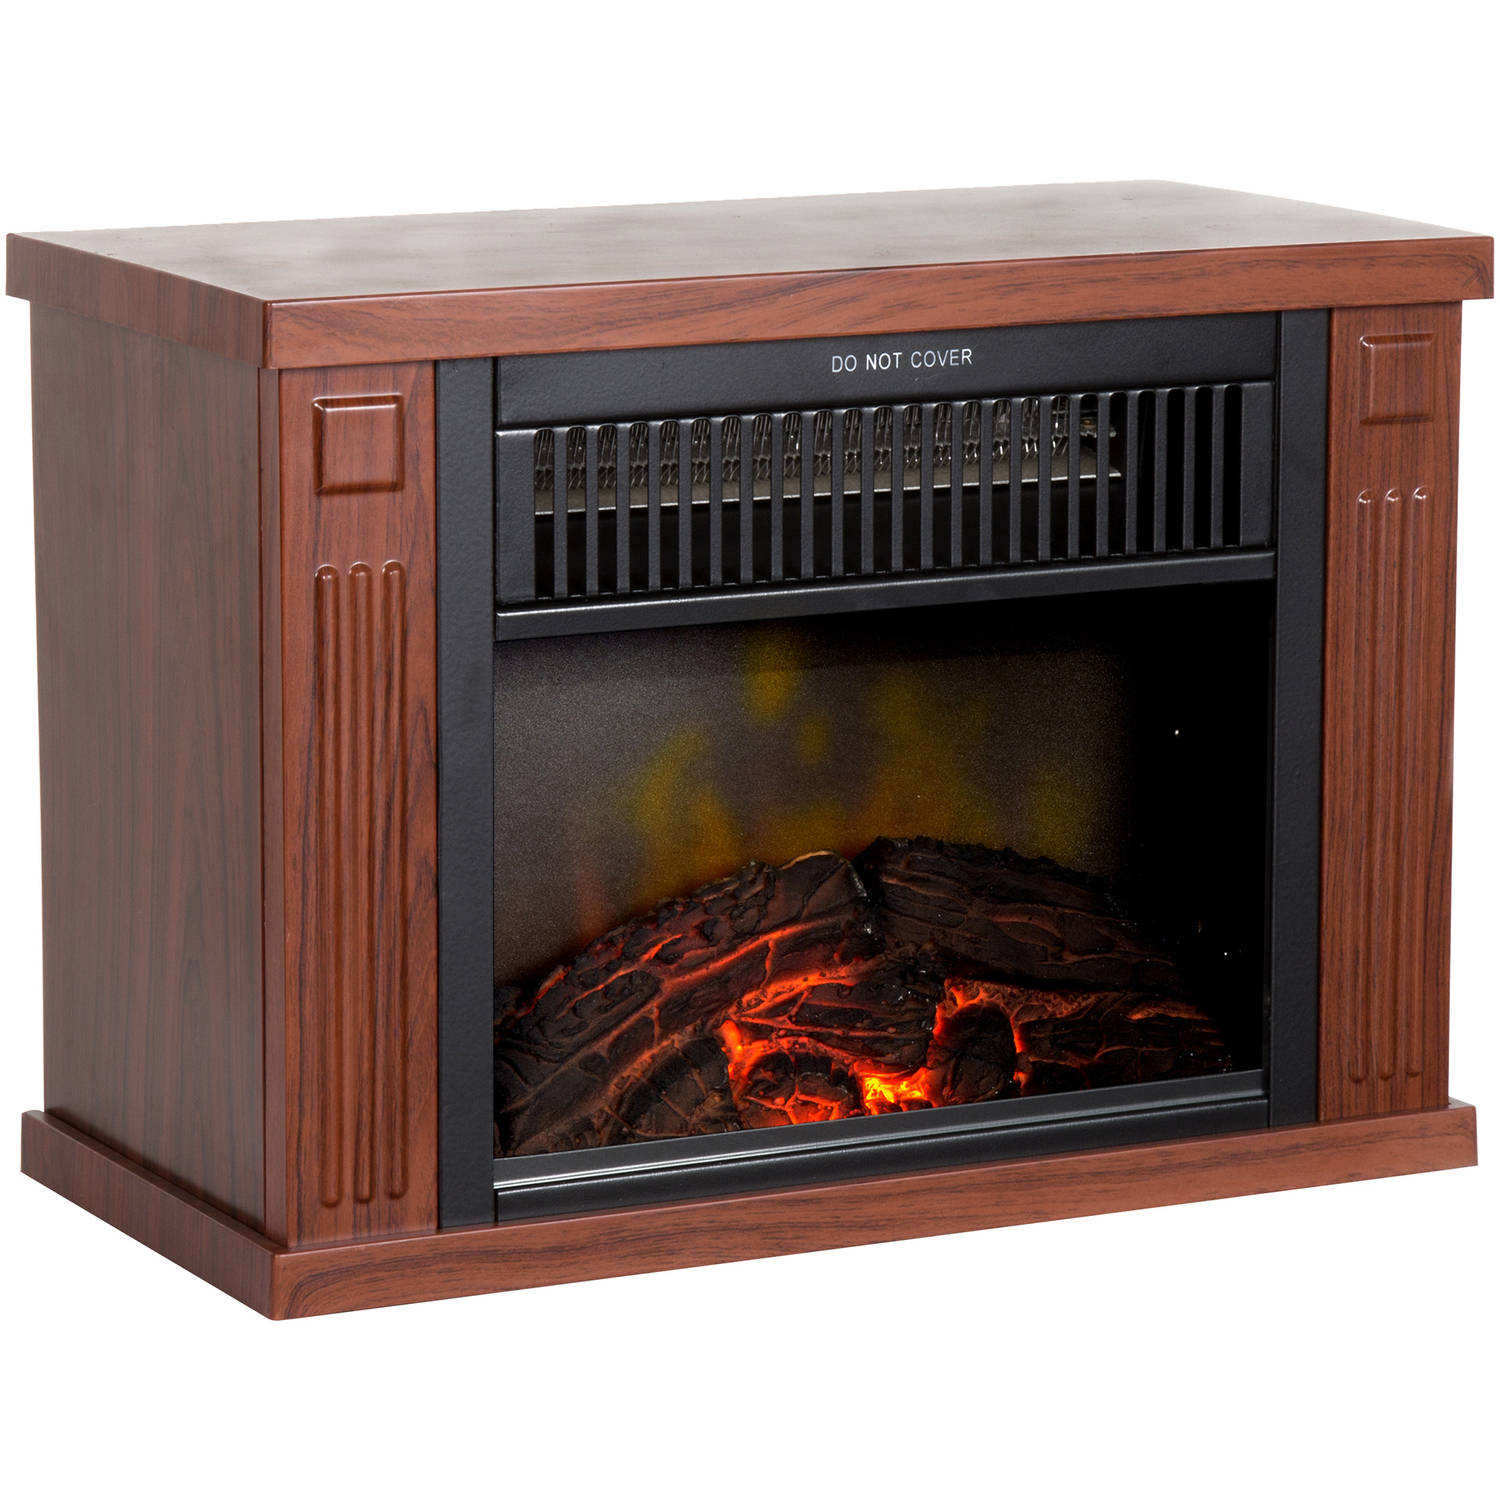 Northwest Portable Mini Electric Fireplace Heater Walmart Com